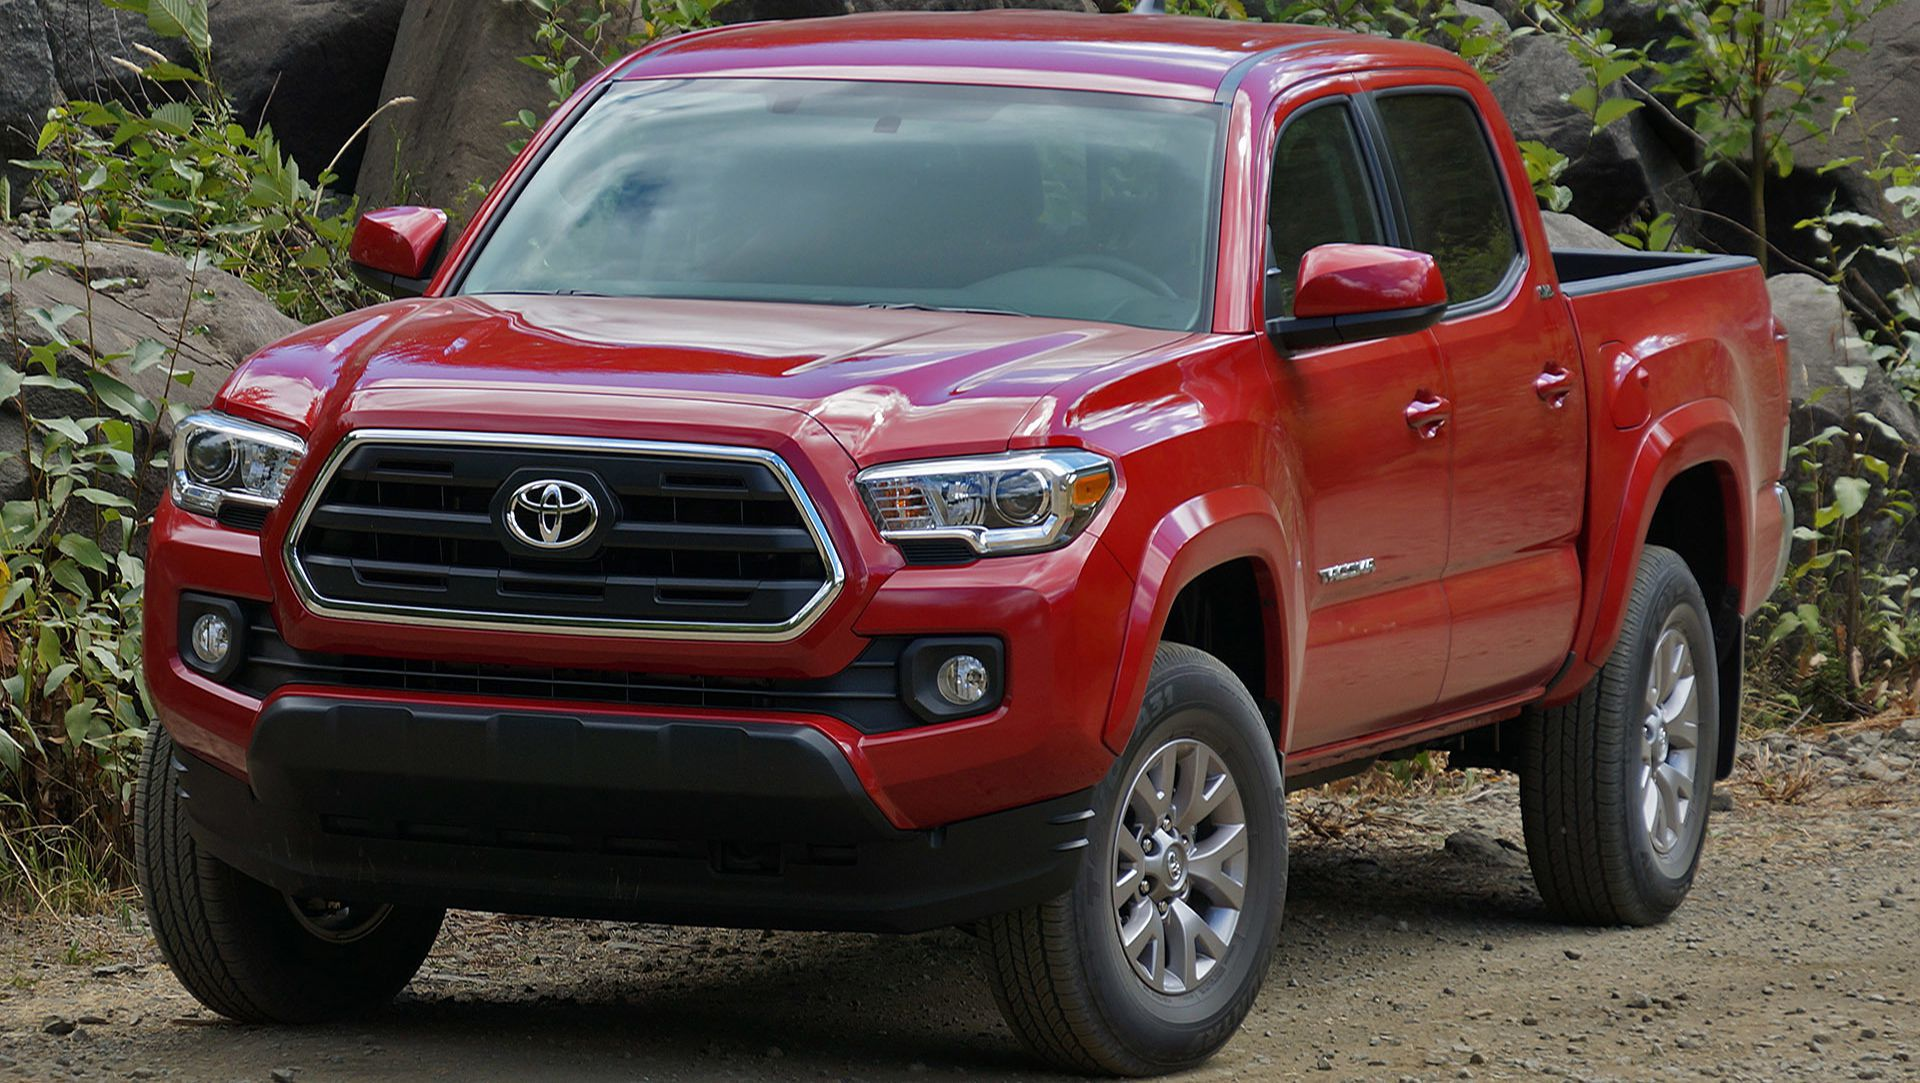 md sale main htm c for toyota trd l tacoma stock price gaithersburg near